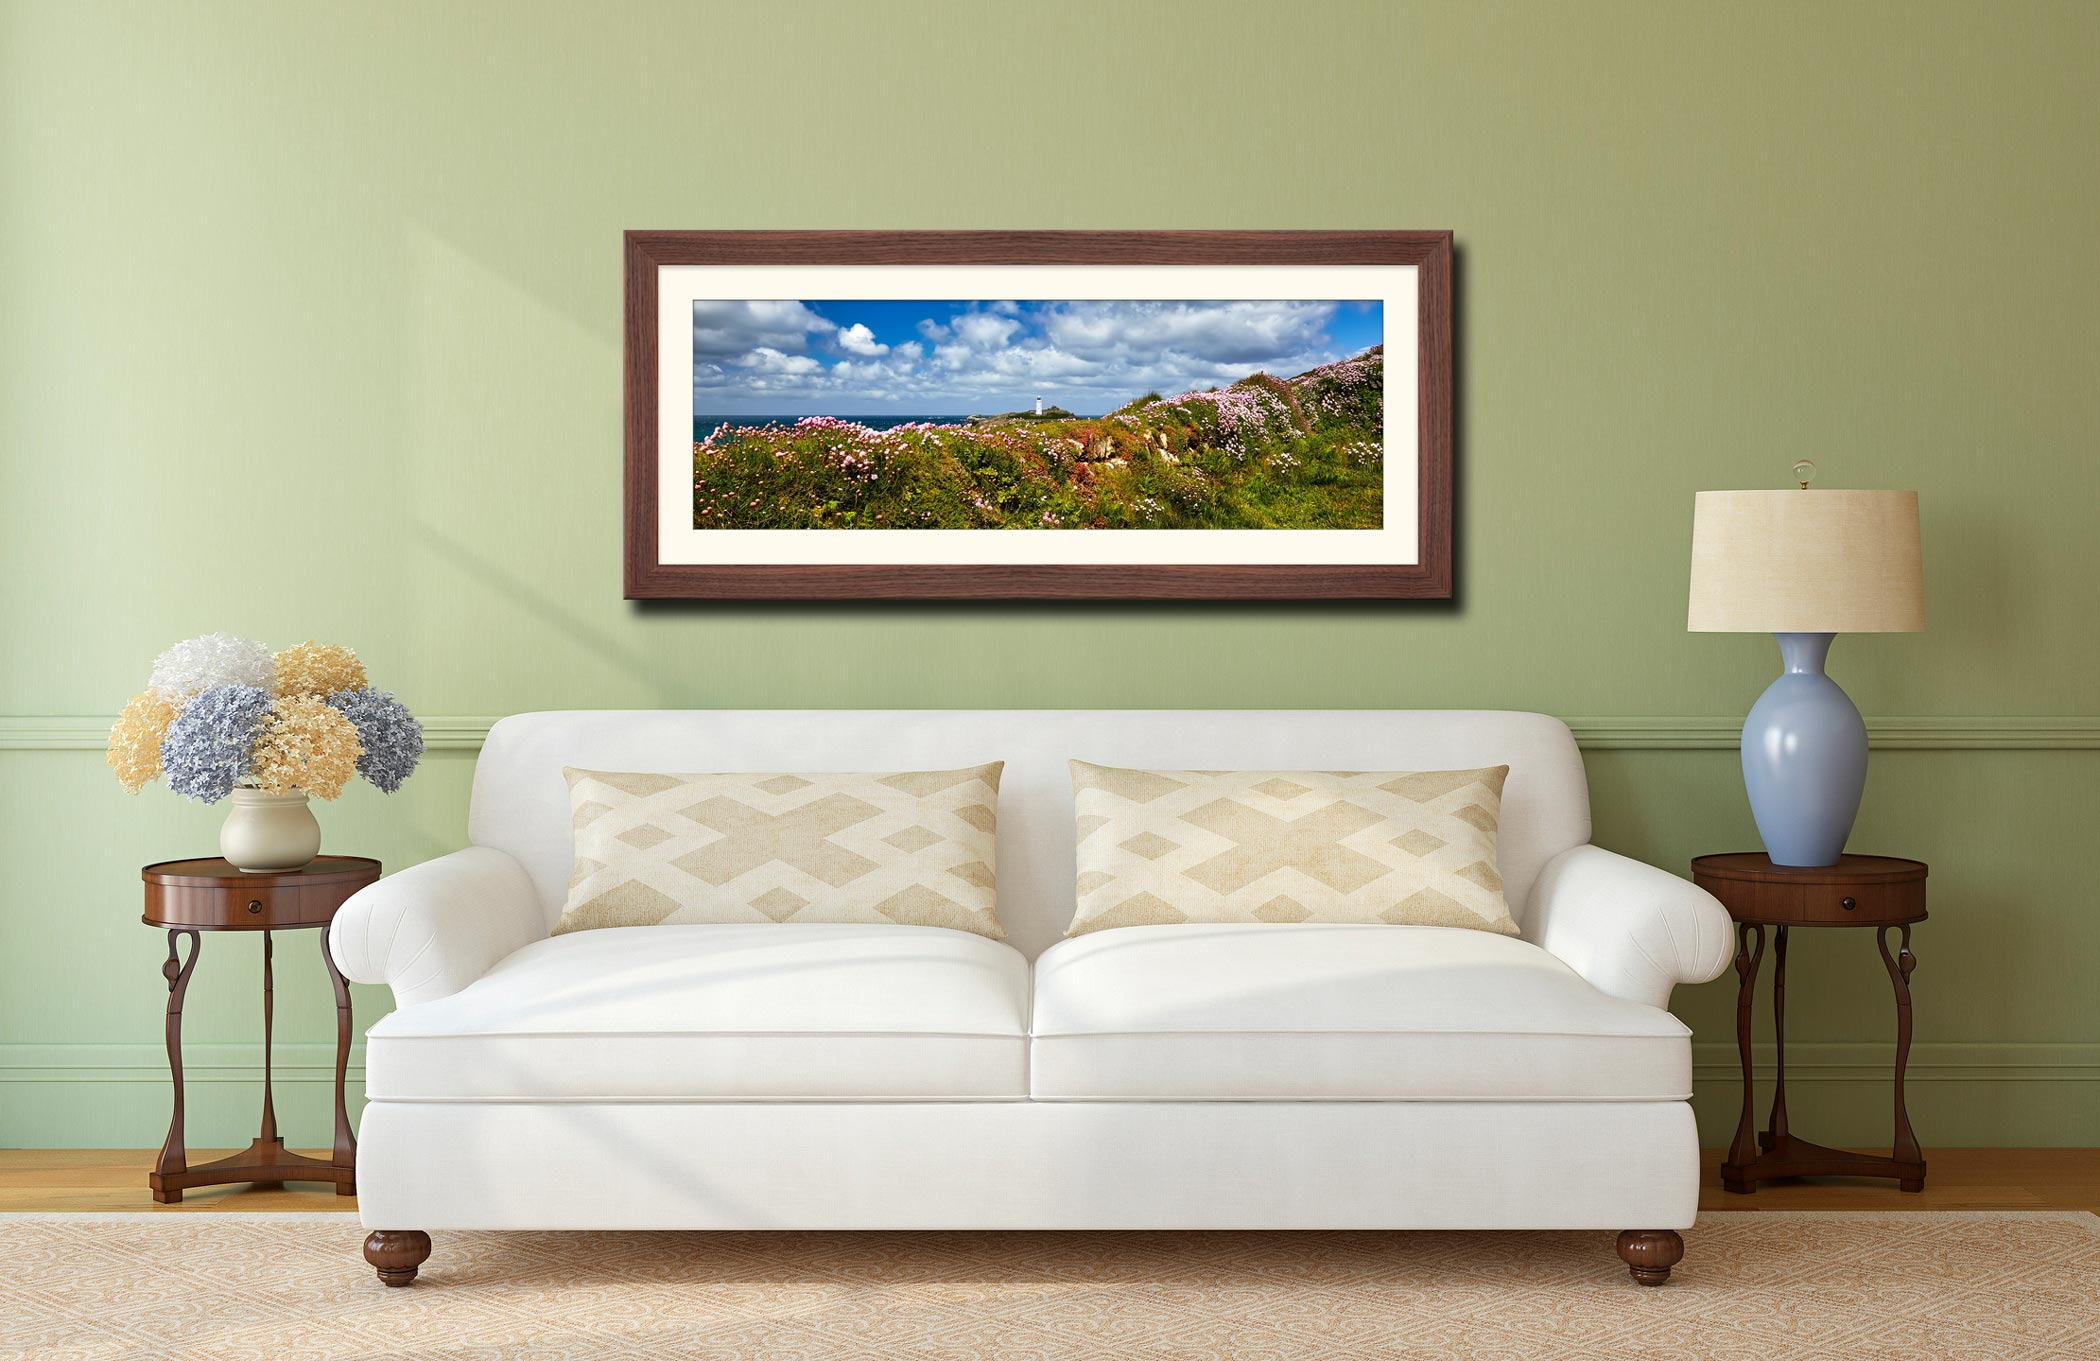 Wildflowers at Godrevy - Framed Print with Mount on Wall